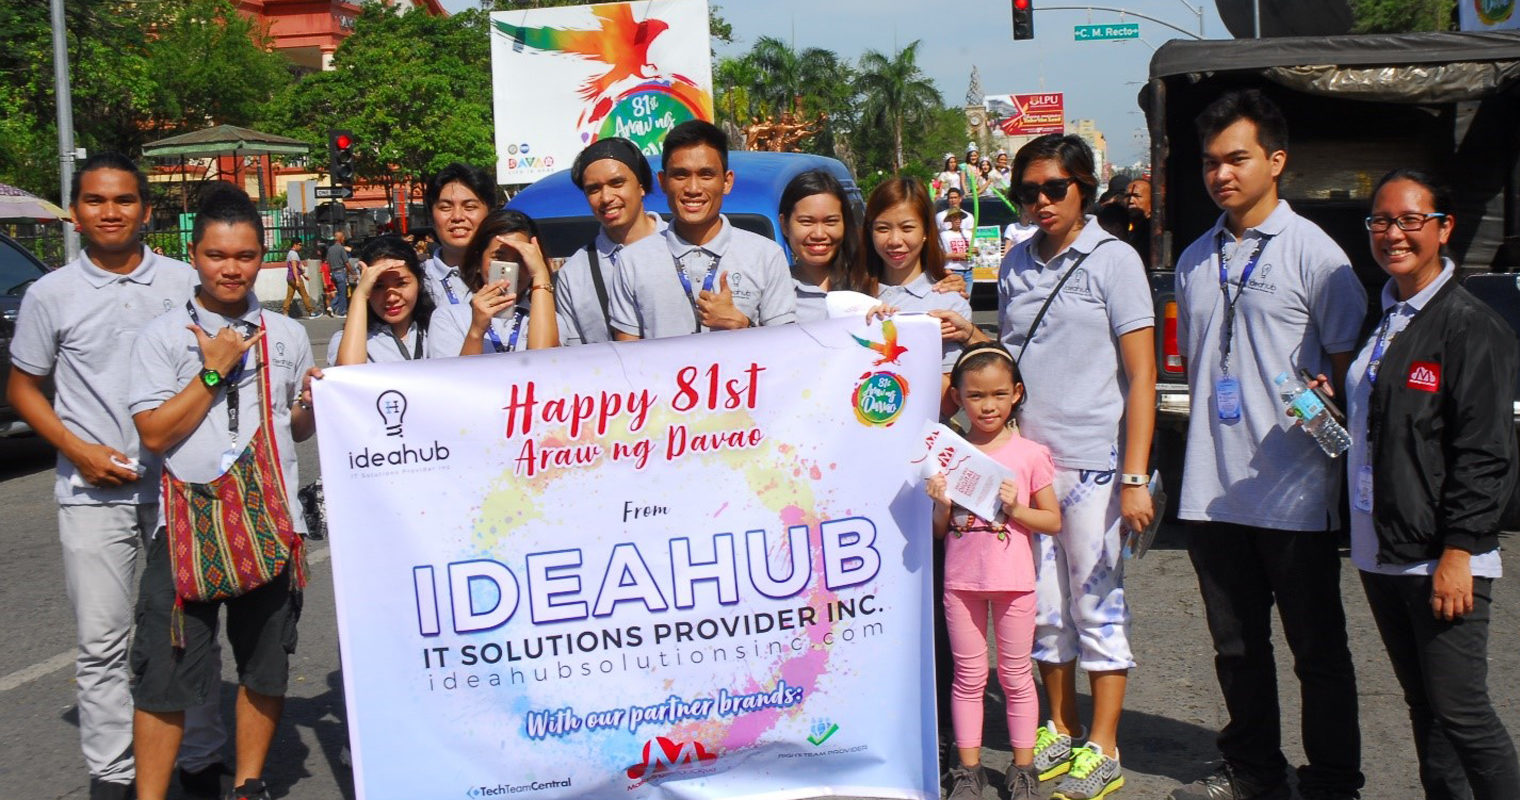 Marketing Media Cloud Took First-Hand Experience in 81st Araw ng Dabaw